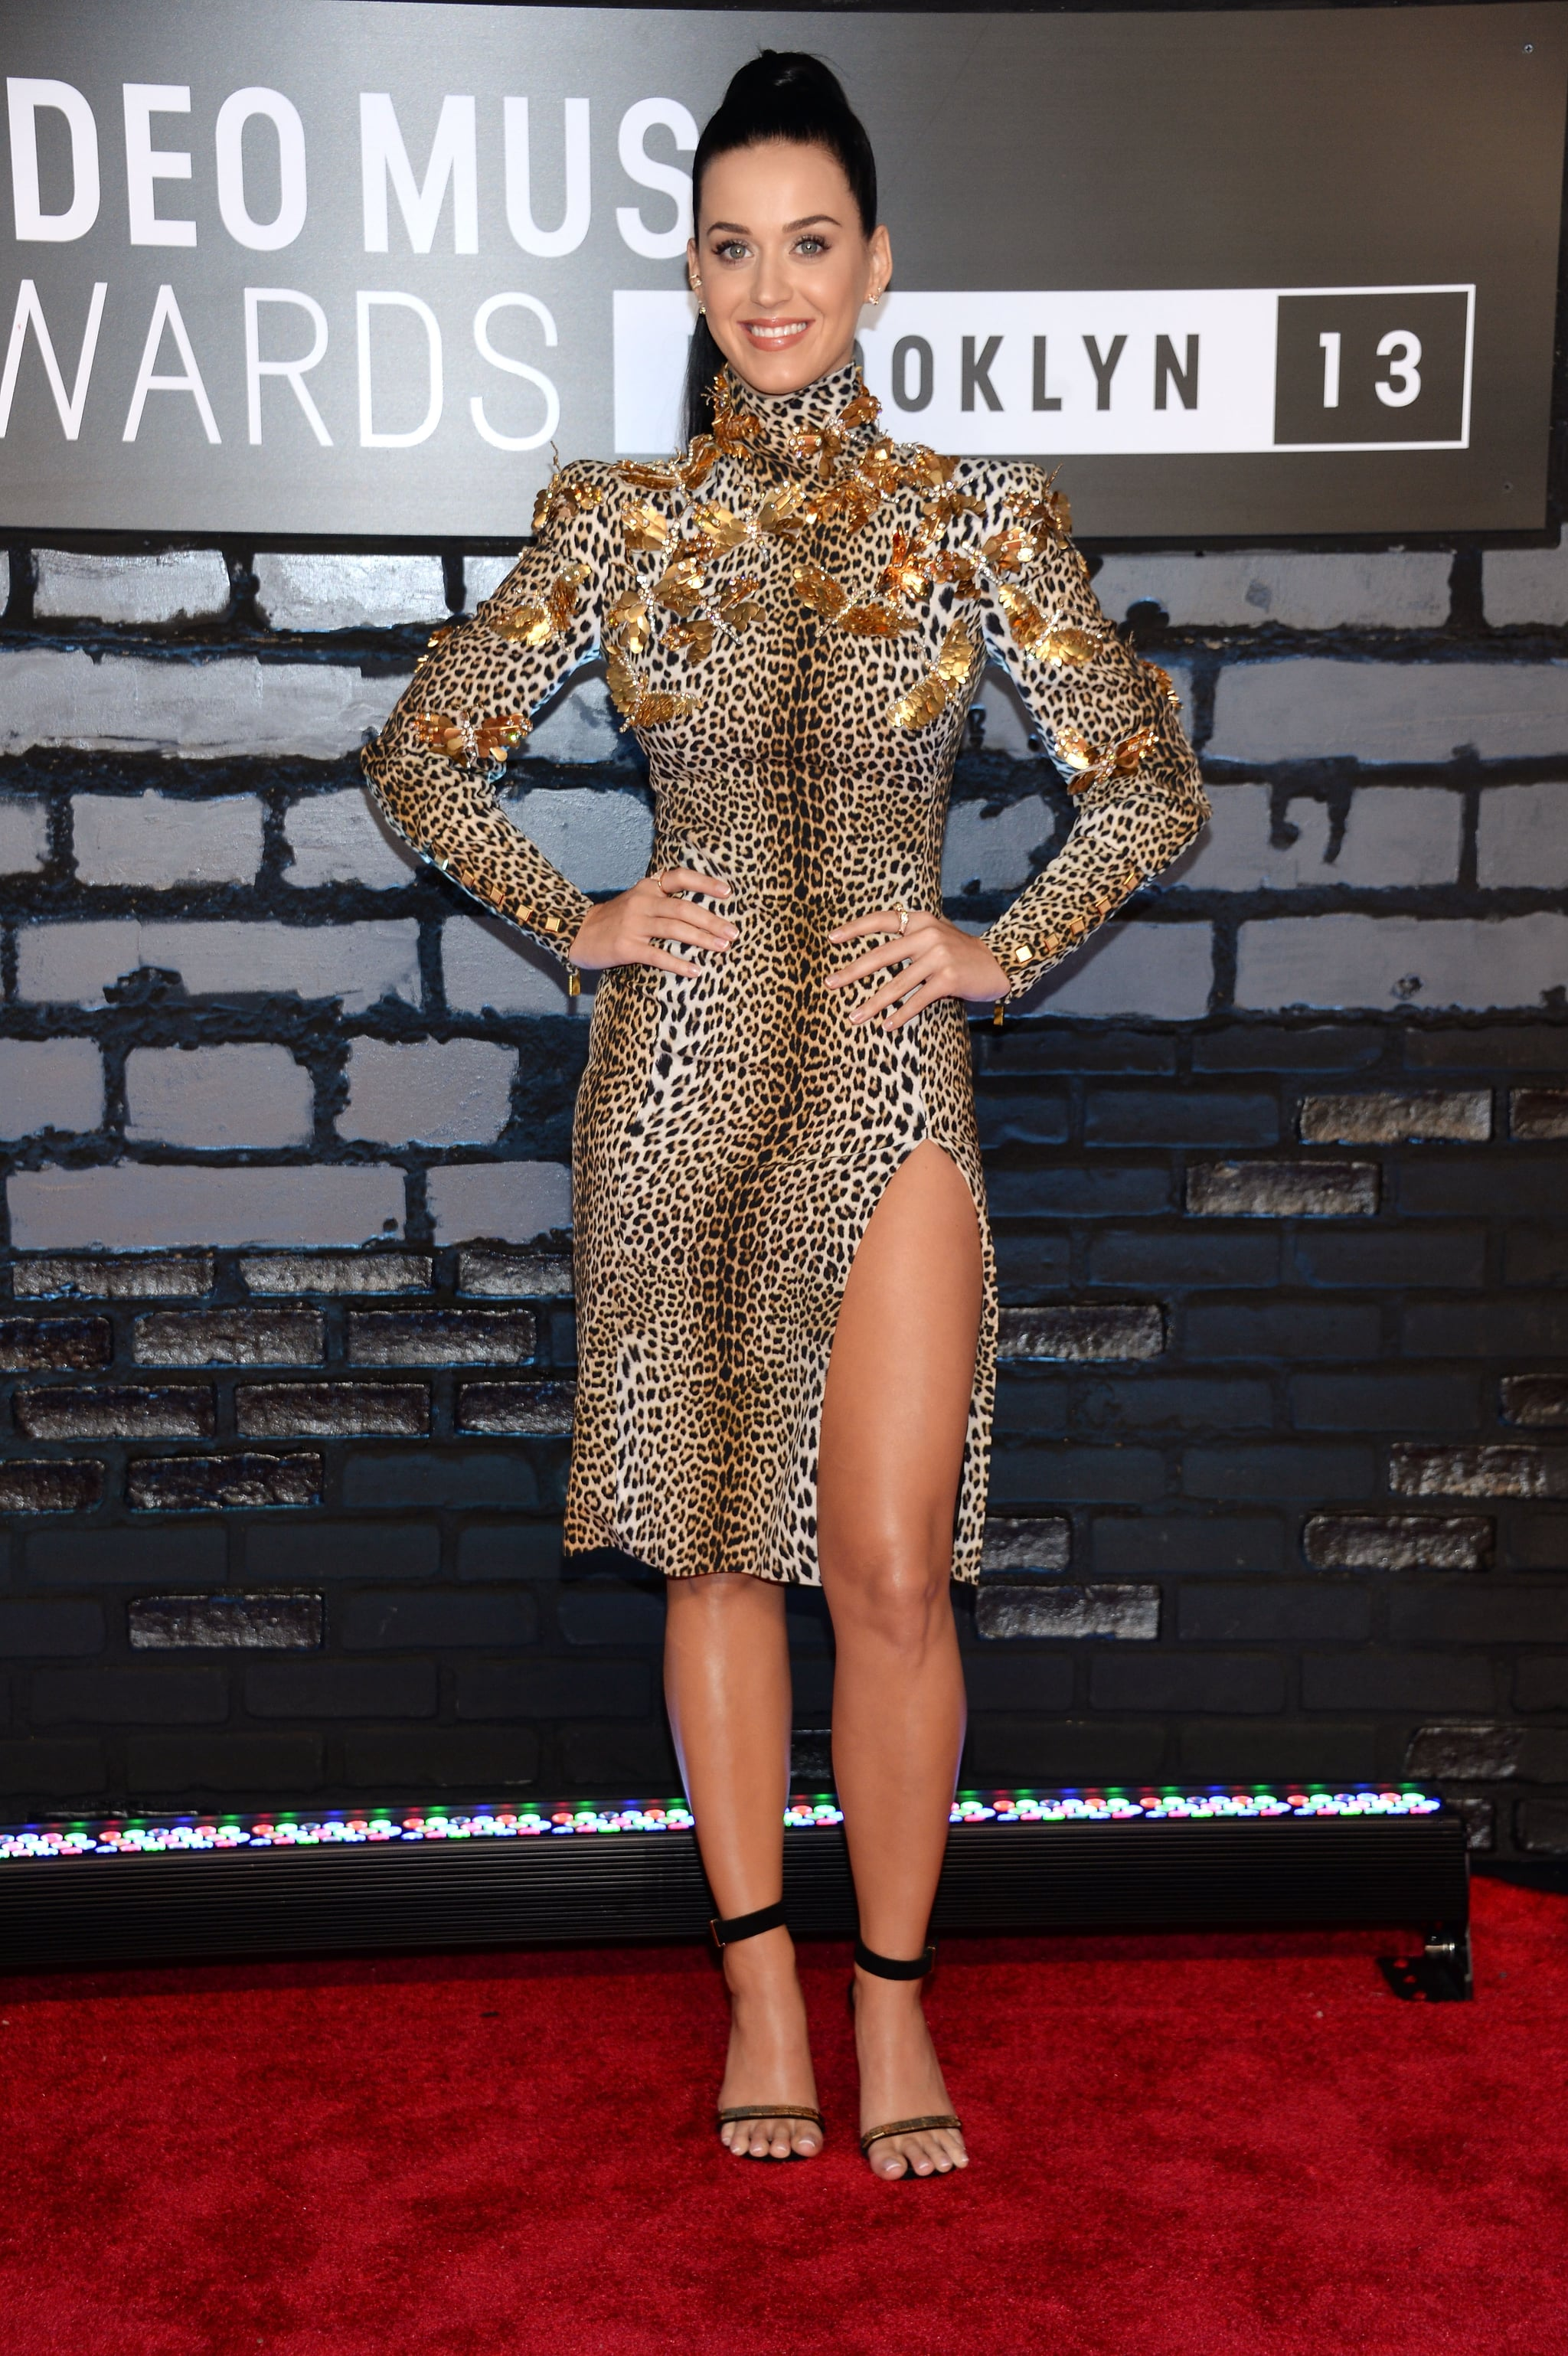 Katy Perry, Lady Gaga, Beyonce: Hottest Red Carpet Moments 4